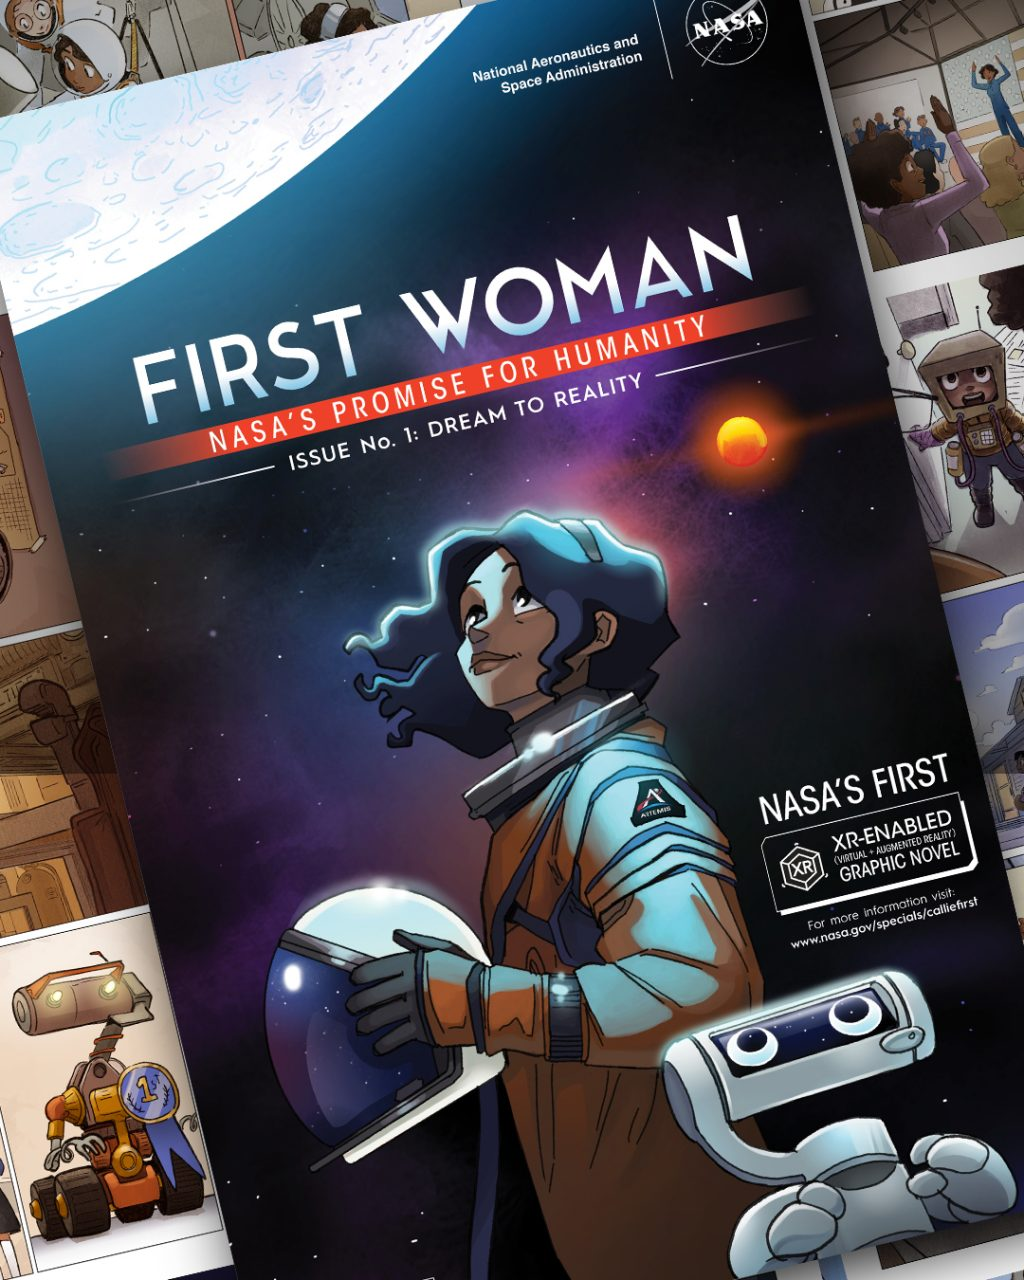 The first woman, the first woman on the moon